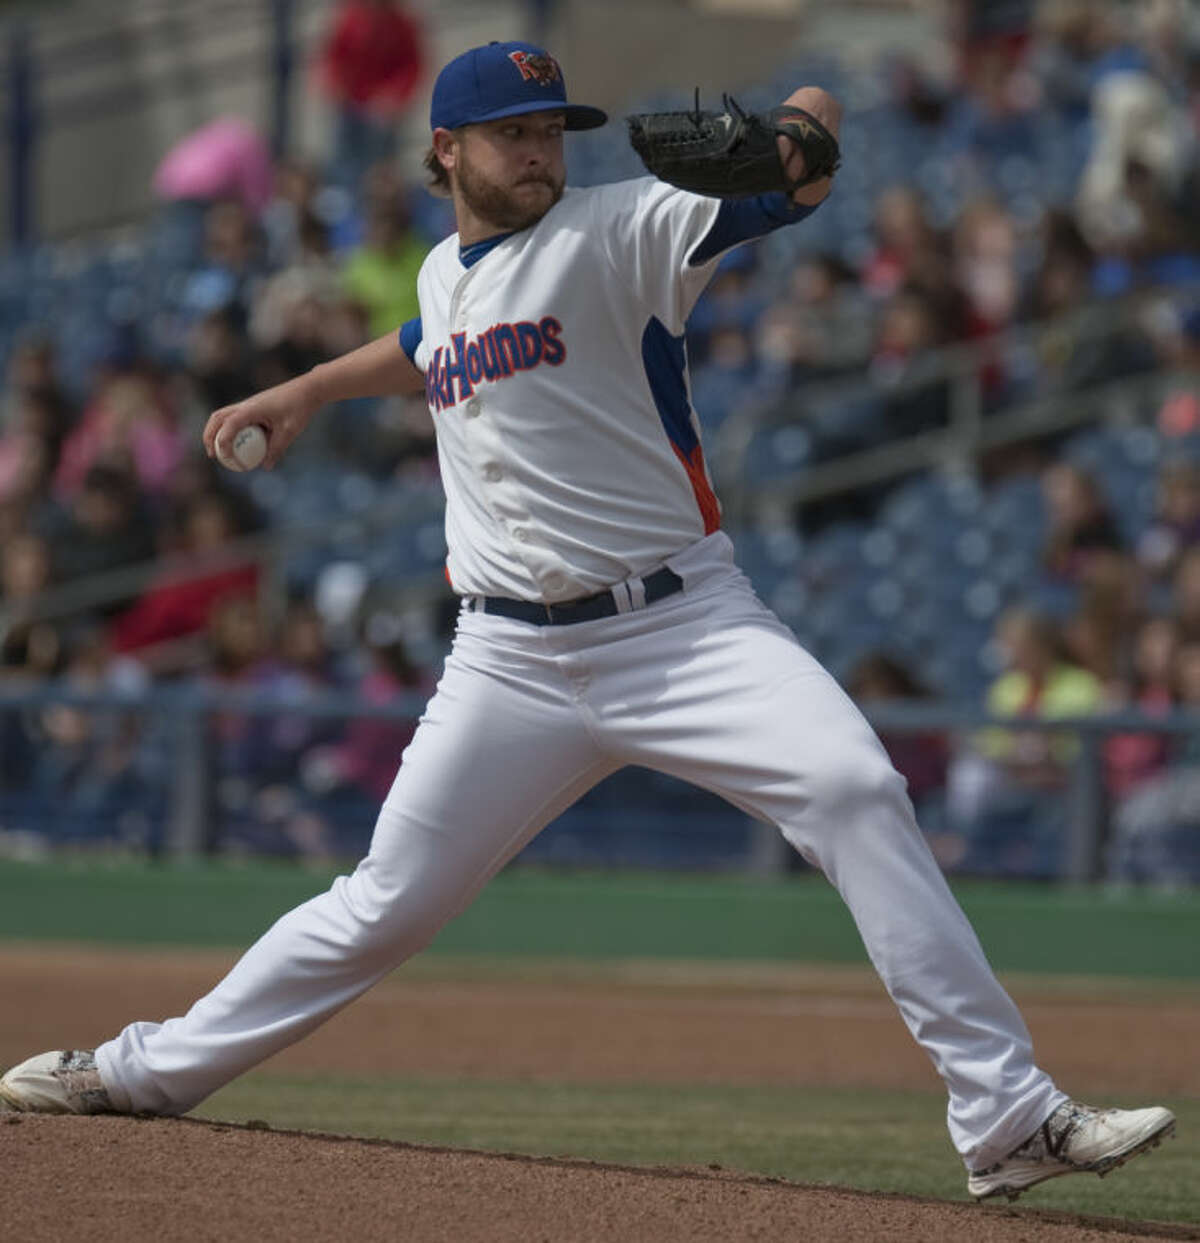 RockHounds' starting pitcher, Nate Long, delivers a pitch against Frisco Tuesday at Security Bank Ballpark. Tim Fischer\Reporter-Telegram